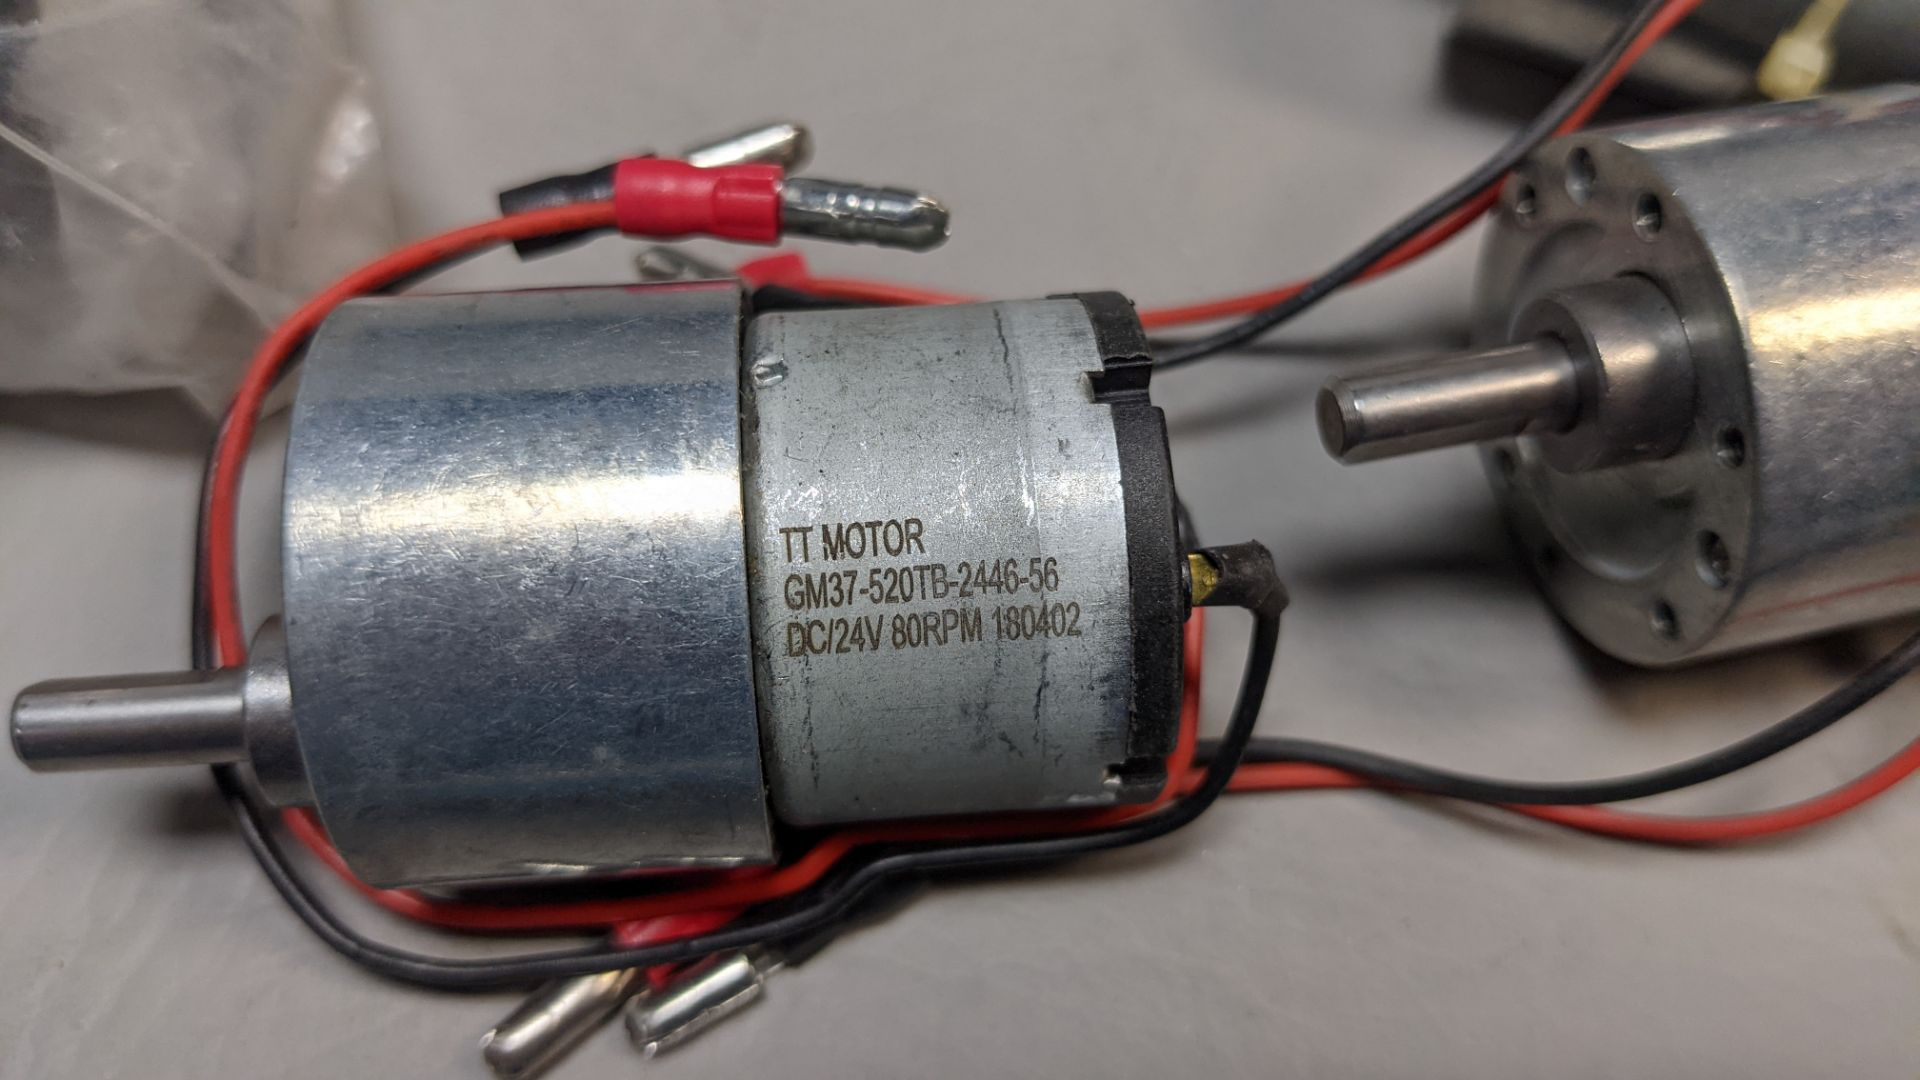 LOT OF TT MOTOR DC MOTORS WITH GEARHEADS - Image 2 of 2